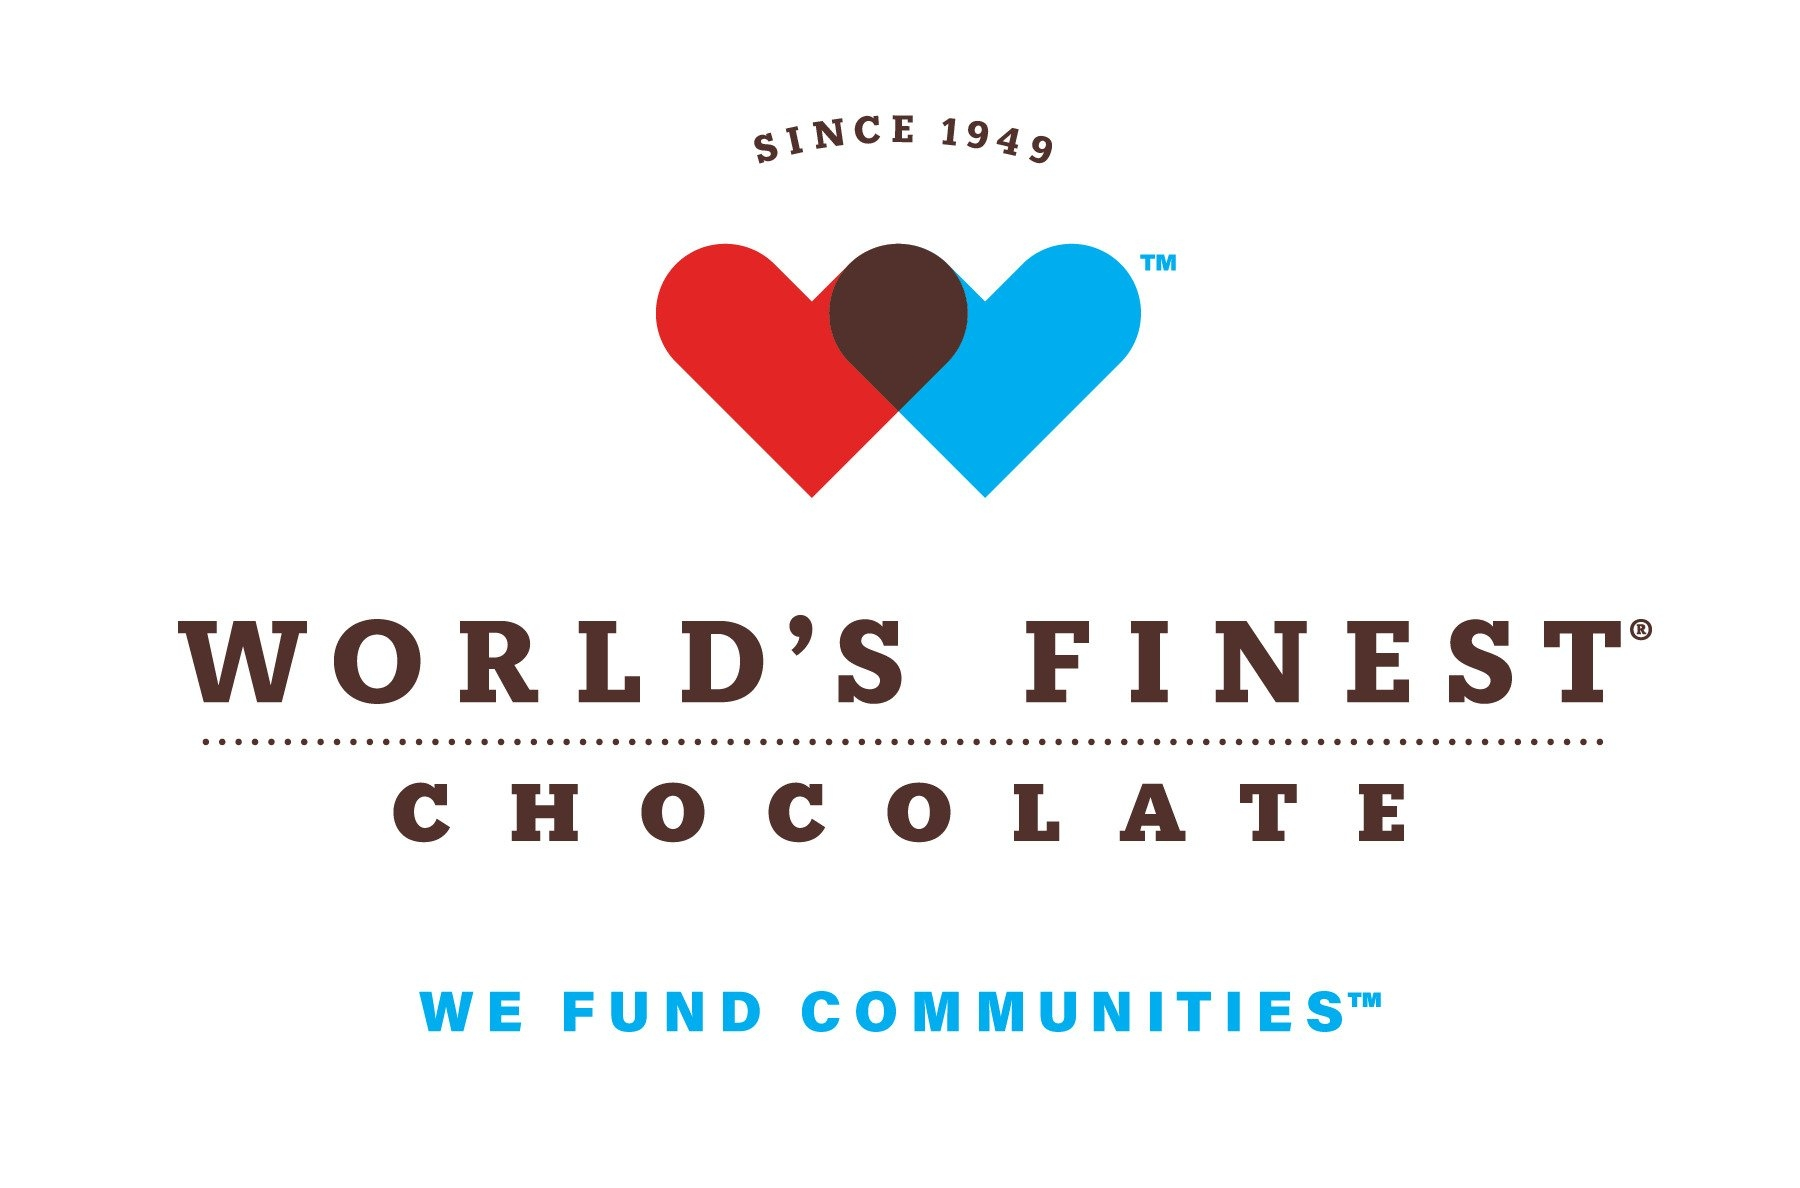 MMS PAL's World's Finest Chocolate Fundraising